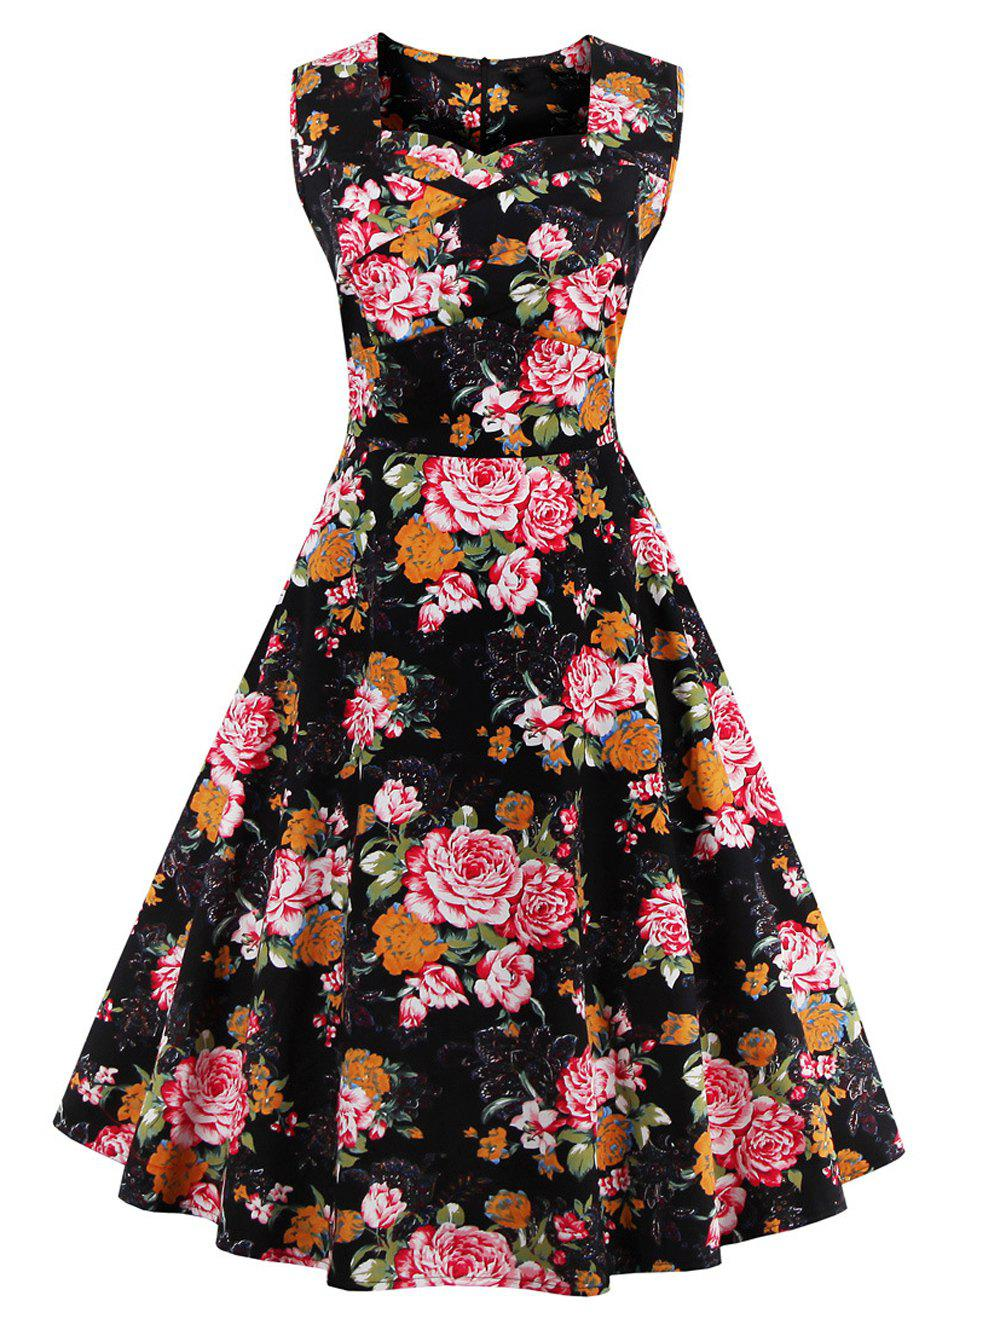 Retro Sweetheart Neck Floral Print Sleeveless Flare Dress